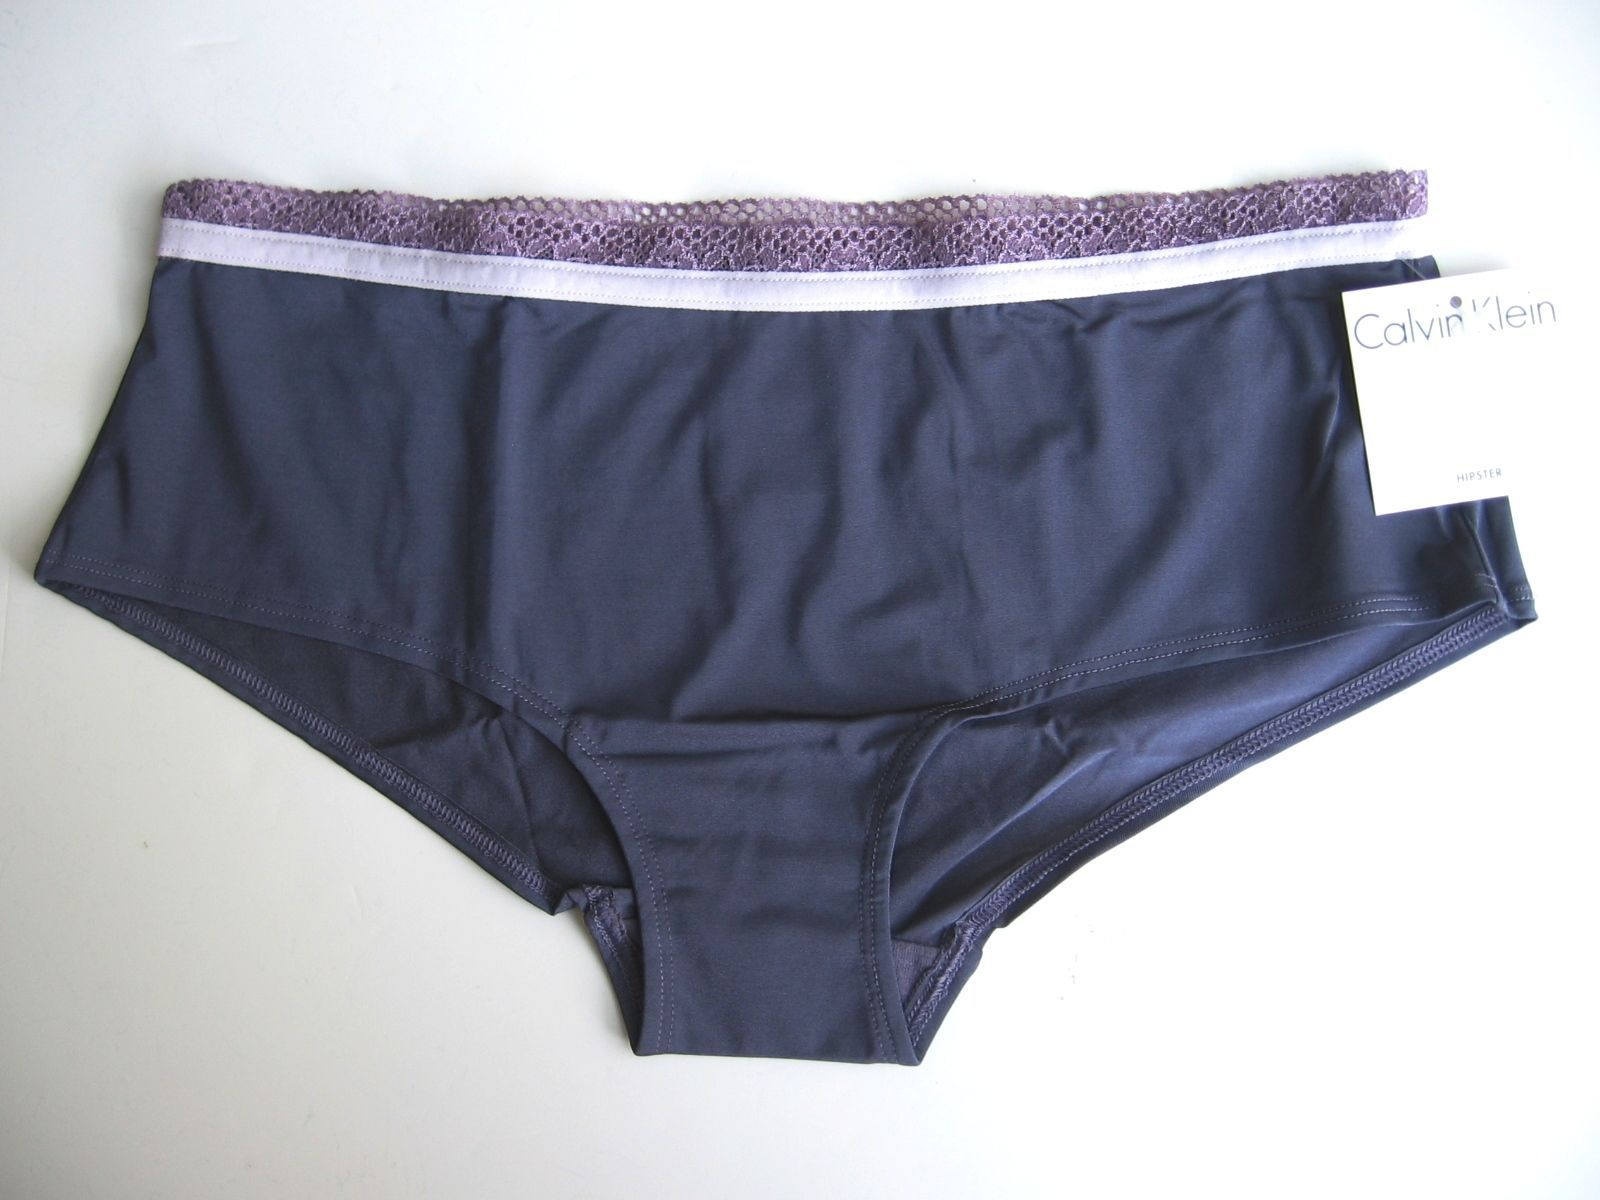 www.prominentresults.com :A0040 Calvin Klein NEW Women's Stretch Silky Smooth Microfiber Hipster D3259D M L